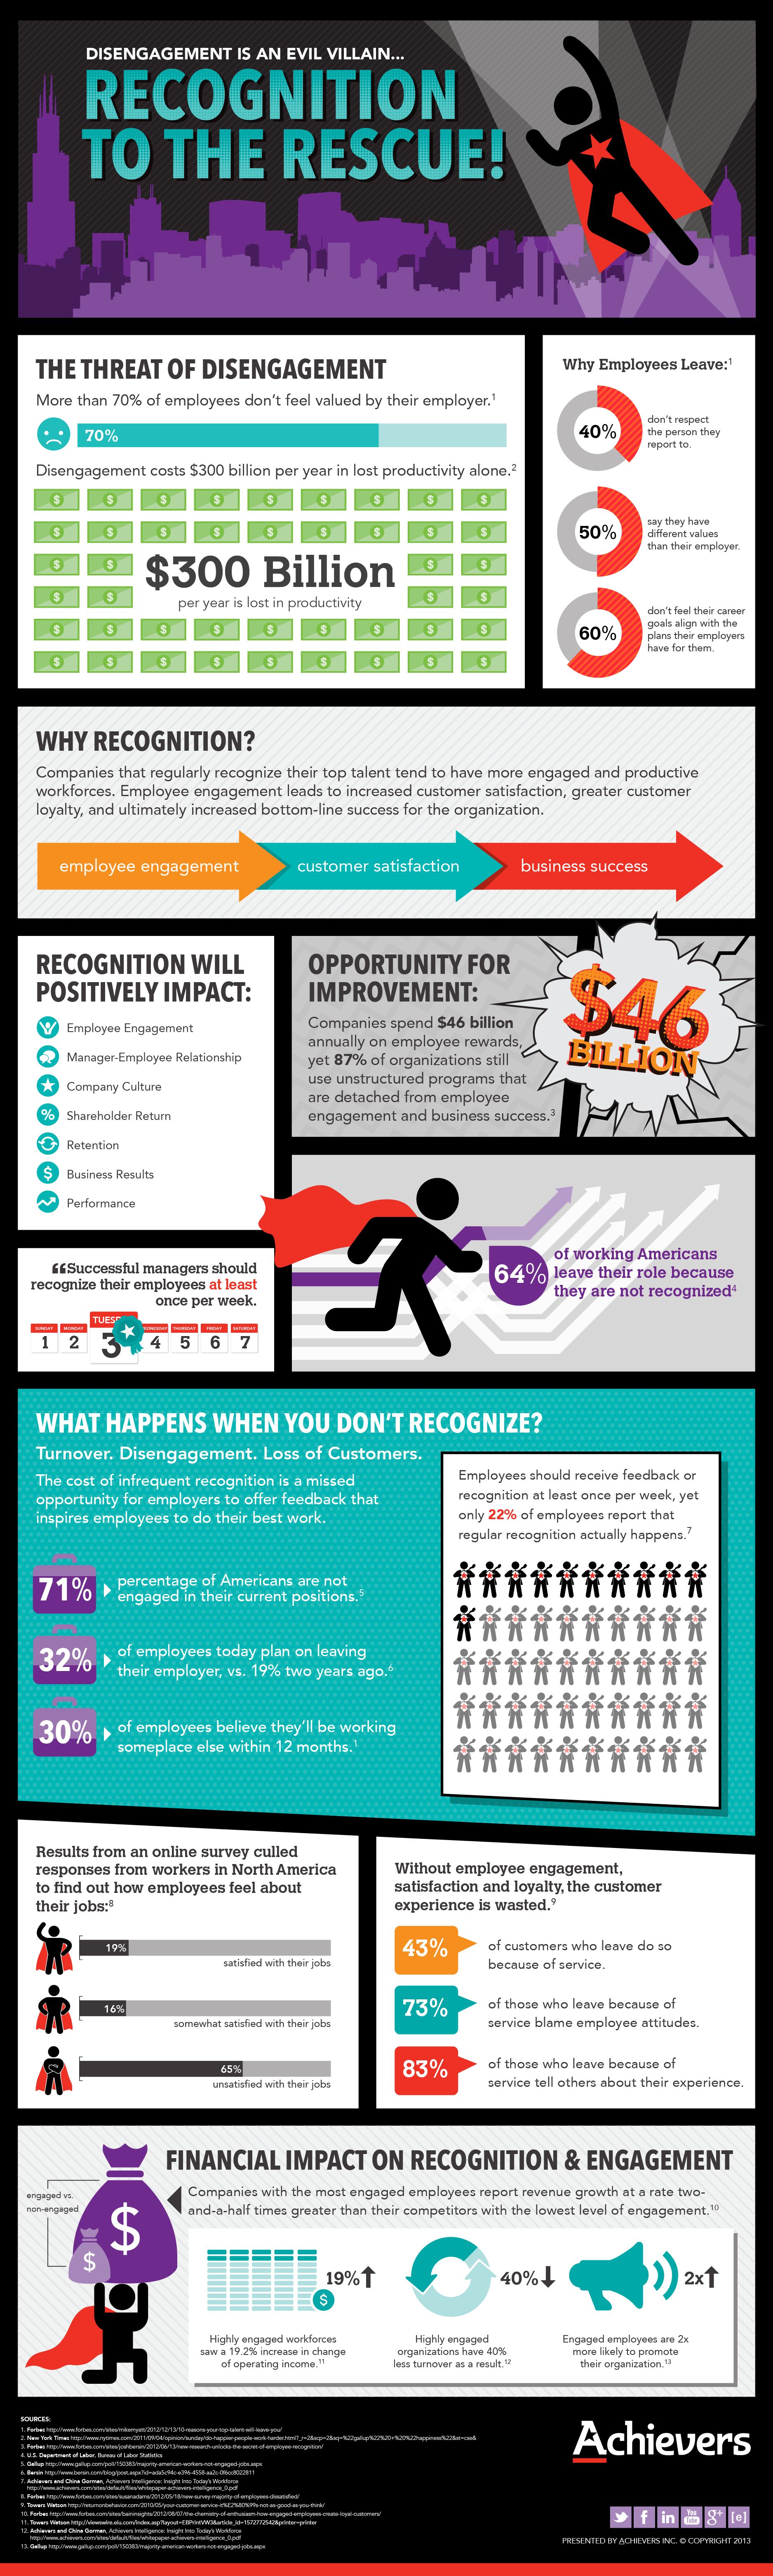 Make Recognition Your Superhero! [#infographic by @Achievers]